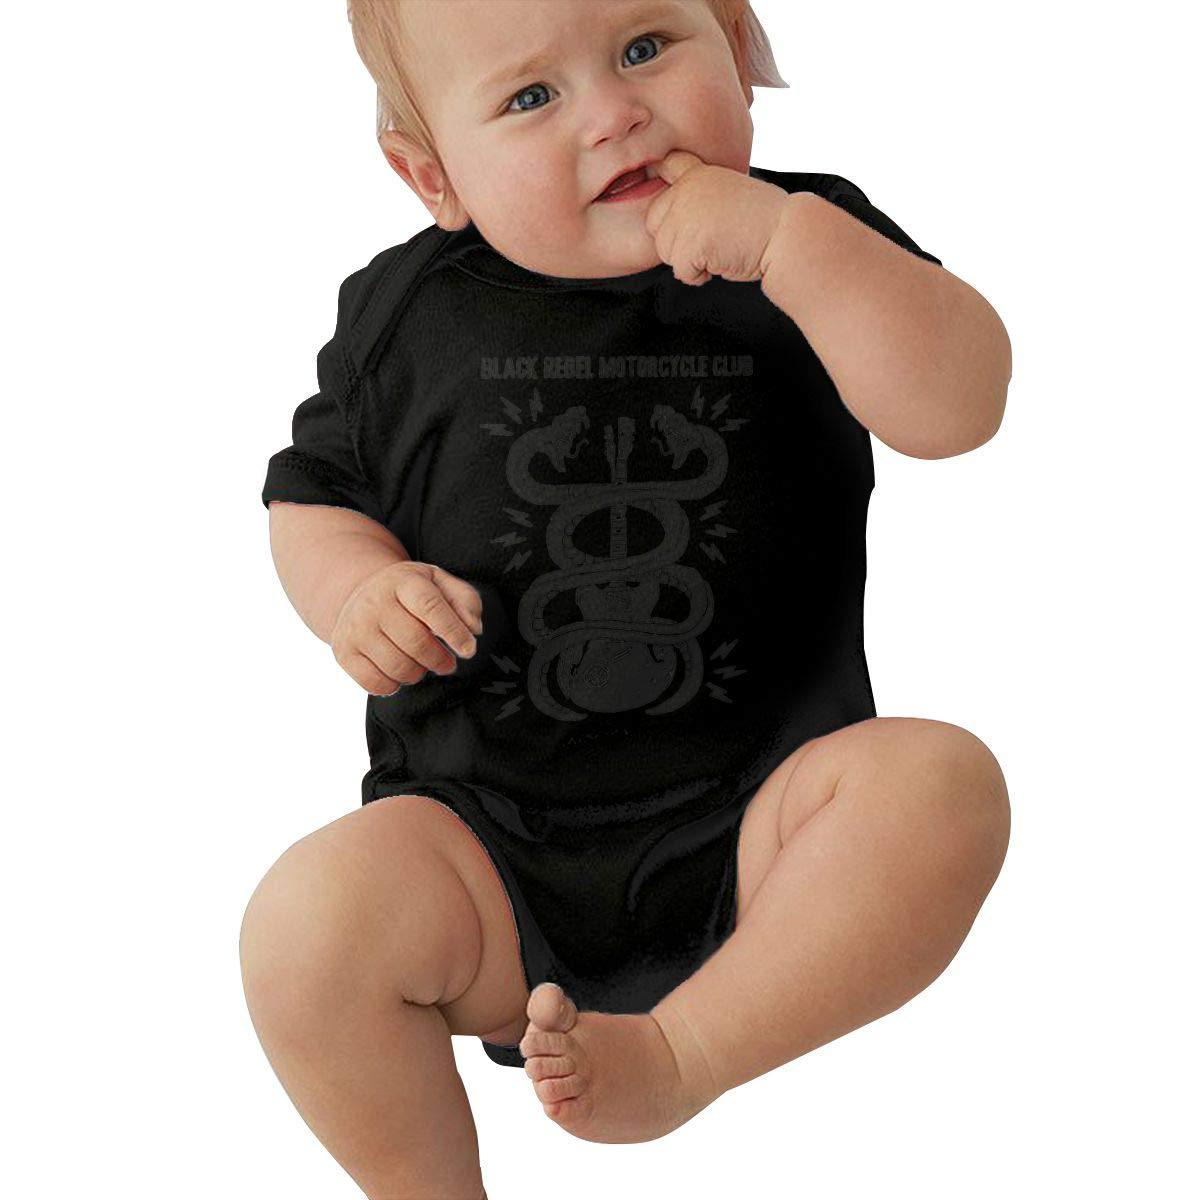 SusanHuling Black Rebel Motorcycle Club Band Unisex Baby Boys Girls Romper Bodysuit Infant Funny Jumpsuit